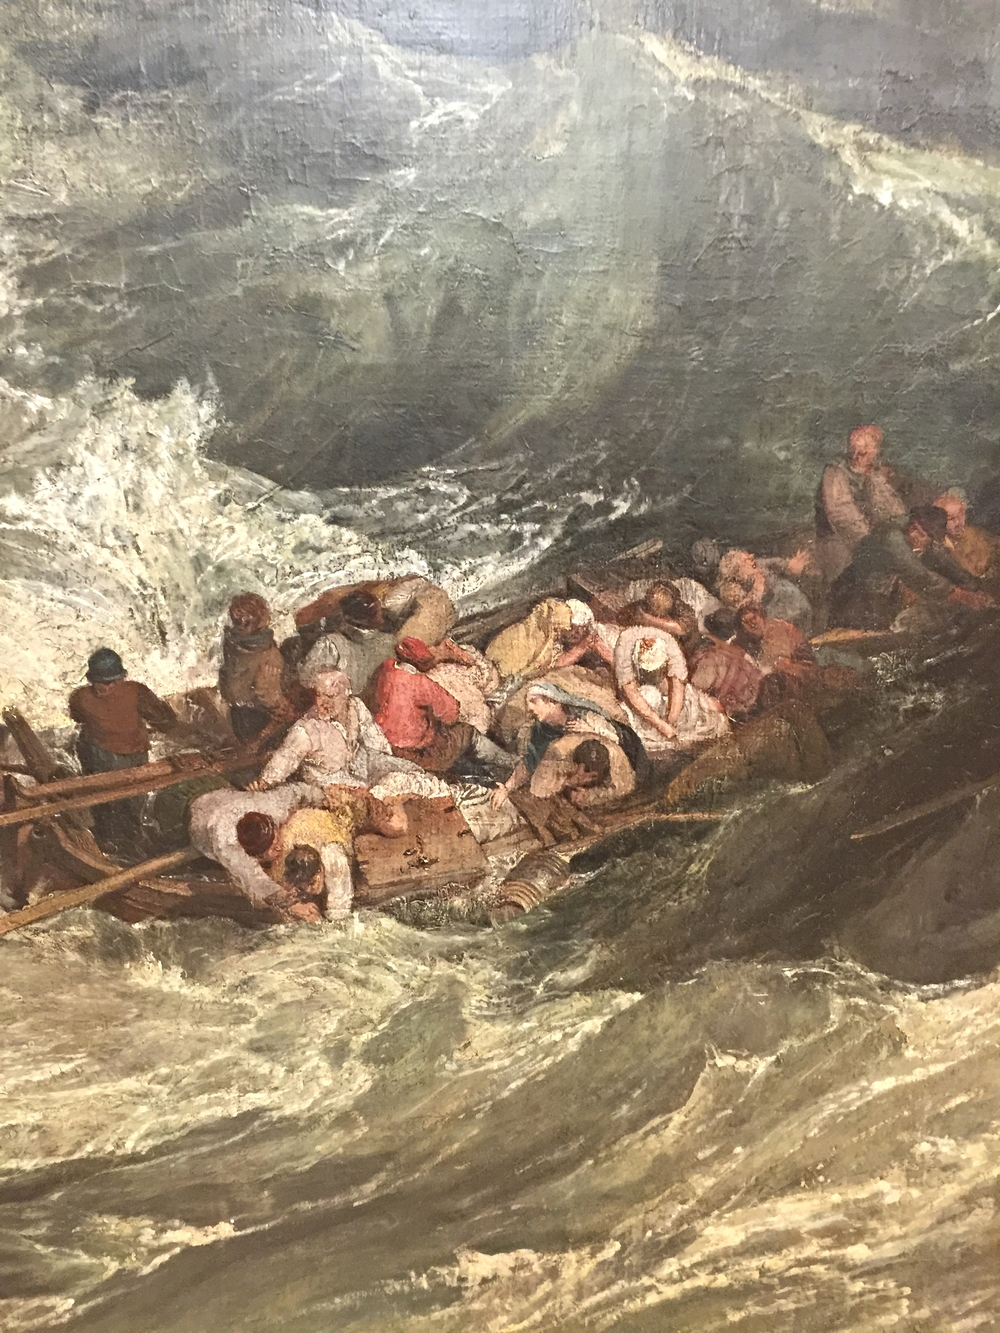 detail from Turner's  Shipwreck.  Notice how Turner's figures are always fighting the sublime force of nature. Seeing the expressions and narratives up close is marvelous.